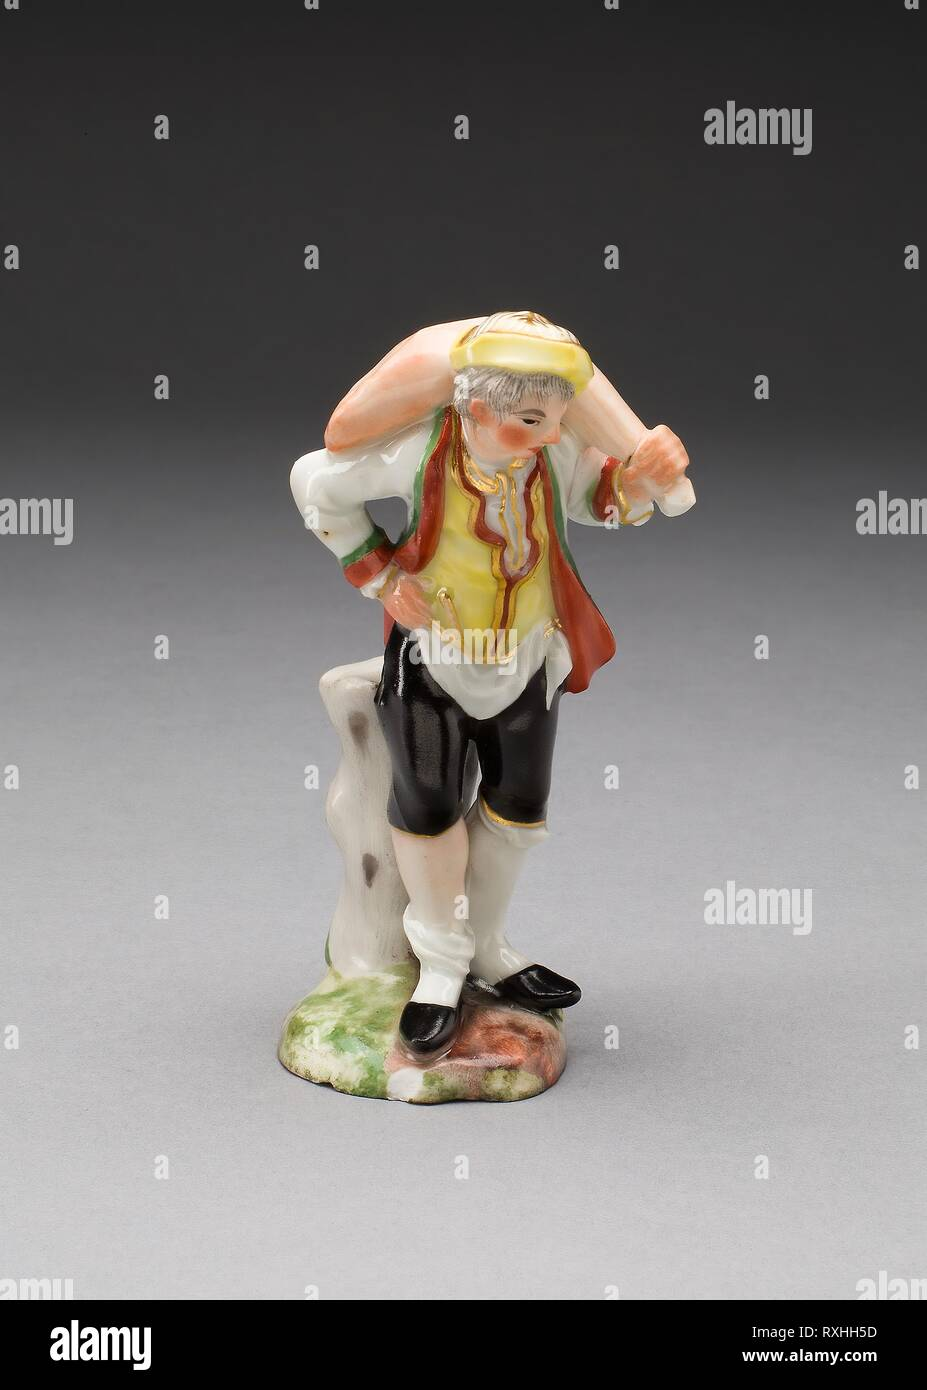 Figure of a Butcher. Attributed to Jean-Jacques Louis; French, 1703-1772. Date: 1760-1770. Dimensions: H. 11.4 cm (4 1/2 in.). Hard-paste porcelain, polychrome enamels, and gilding. Origin: France. Museum: The Chicago Art Institute. Stock Photo